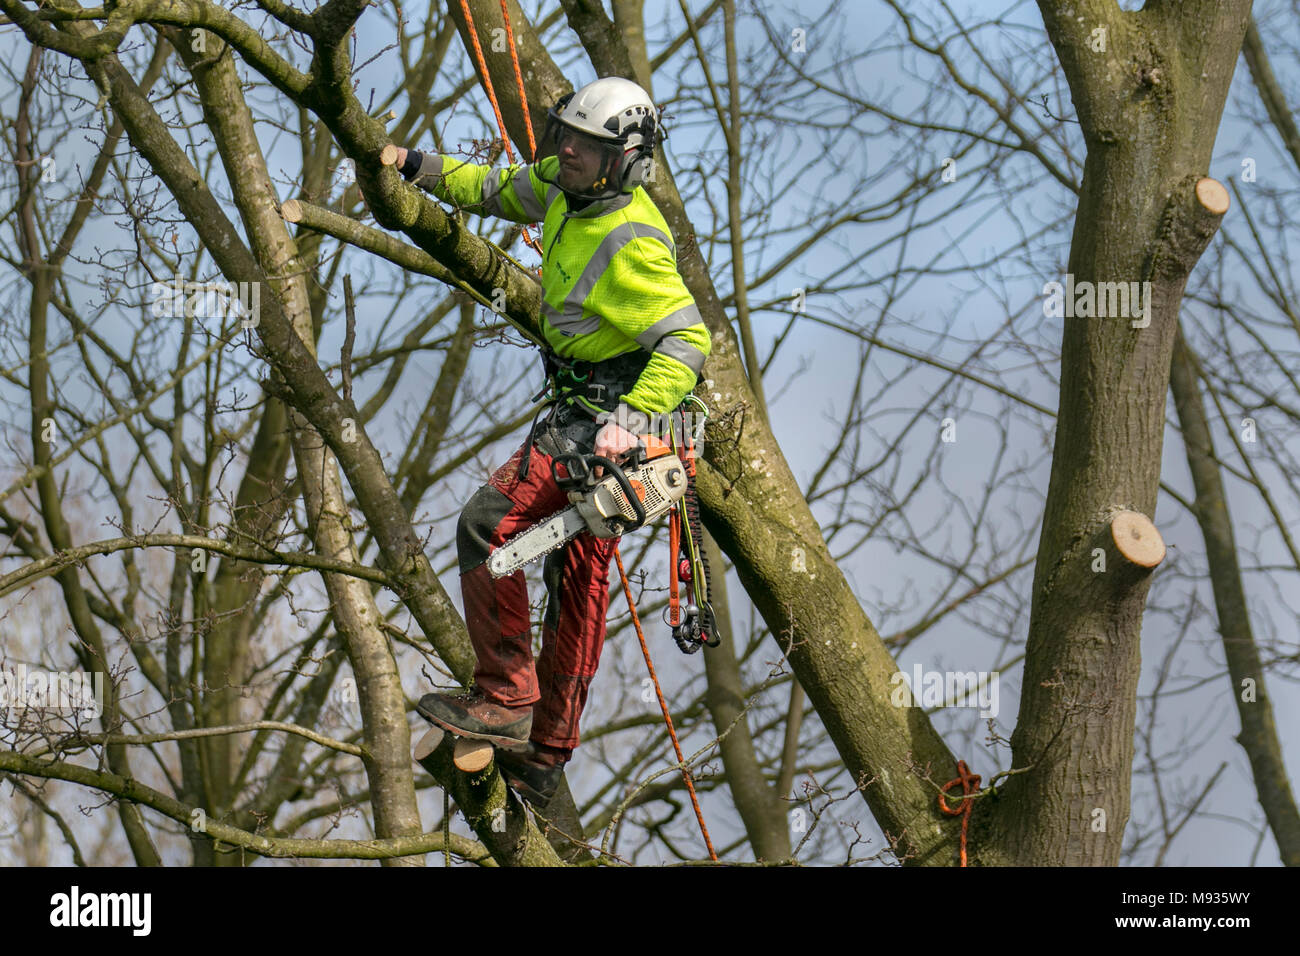 Tree Removal, equipment, lop, lopping, gardener, Pruning, Felling, tree, work, trim, tool, lopping branches, Crown Reduction, Crown Thinning by professional arborist, skilled tree surgeons working to BS 3998 (Recommendations for Tree Work) in Southport, Merseyside, UK Stock Photo